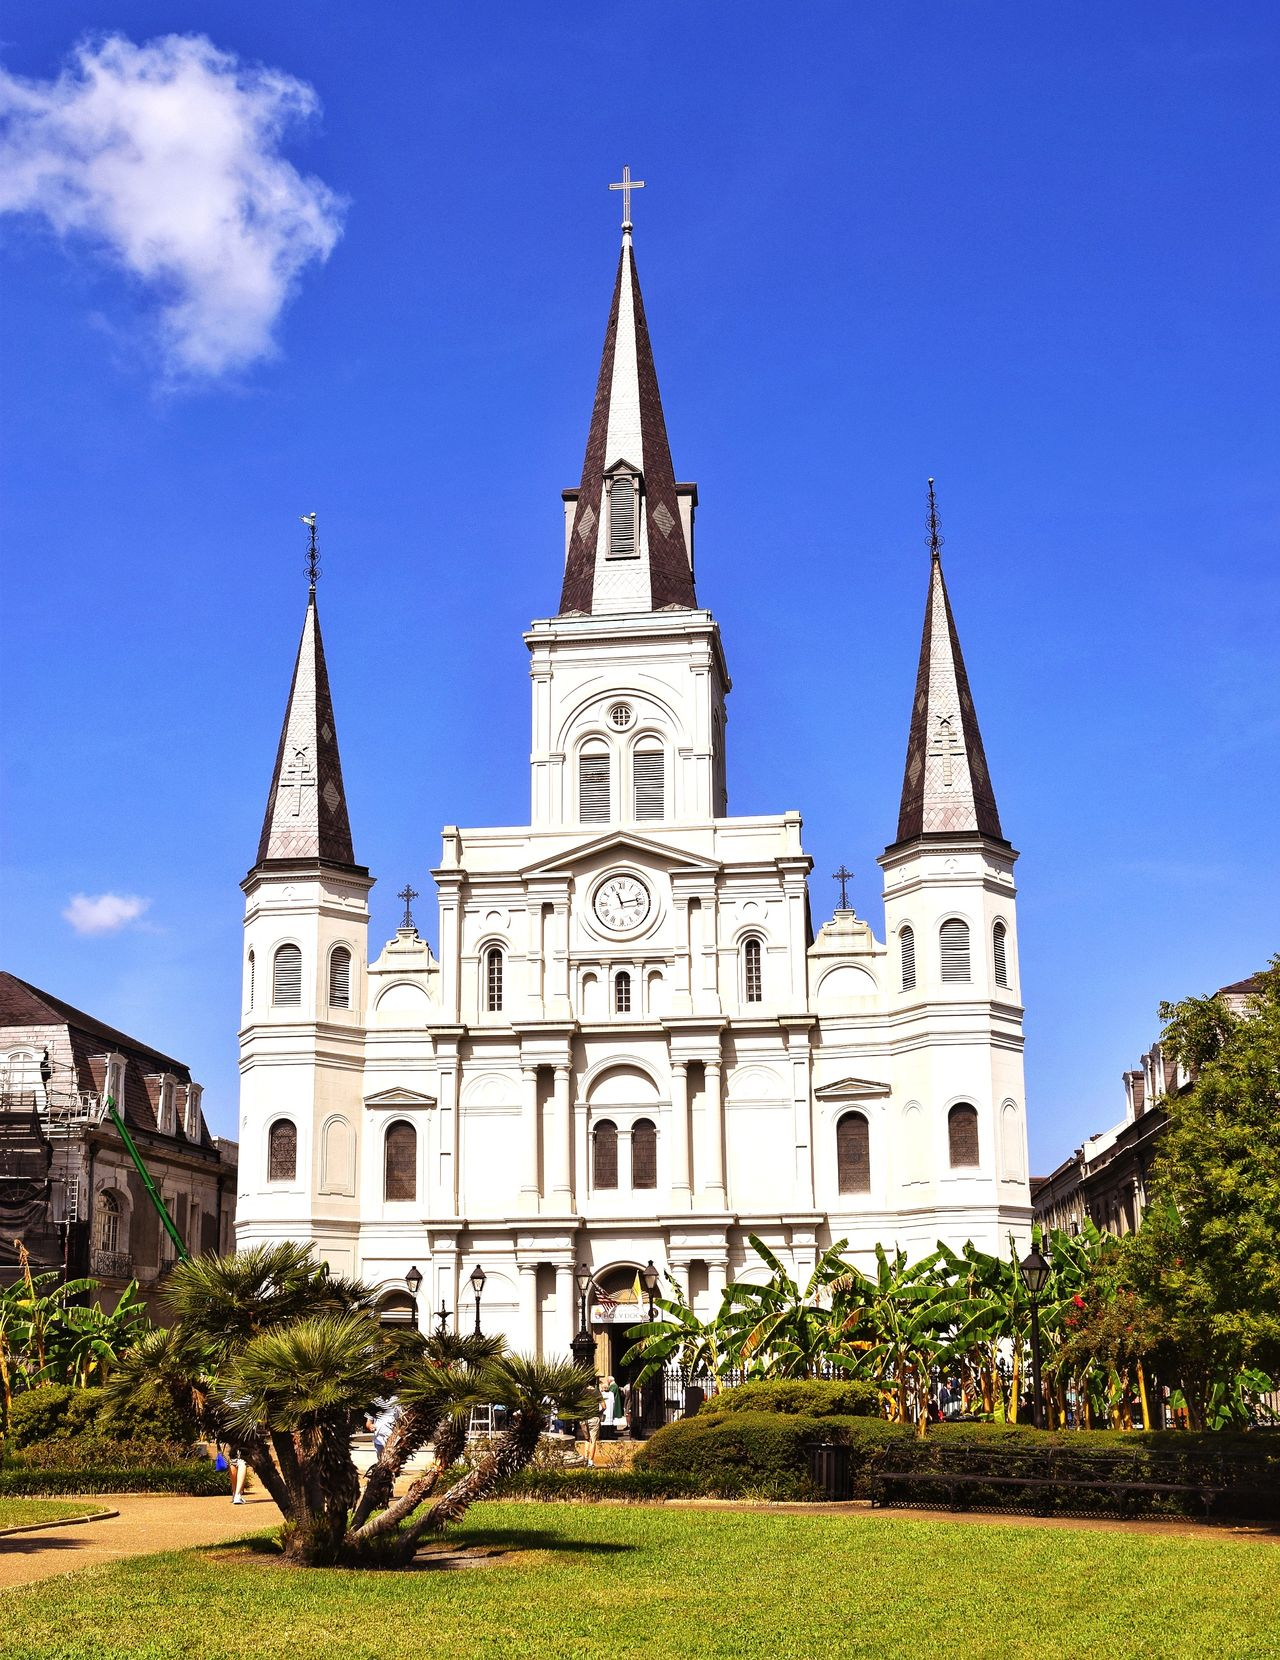 Architecture Religion Place Of Worship Building Exterior Spirituality Built Structure Outdoors Jackson Square